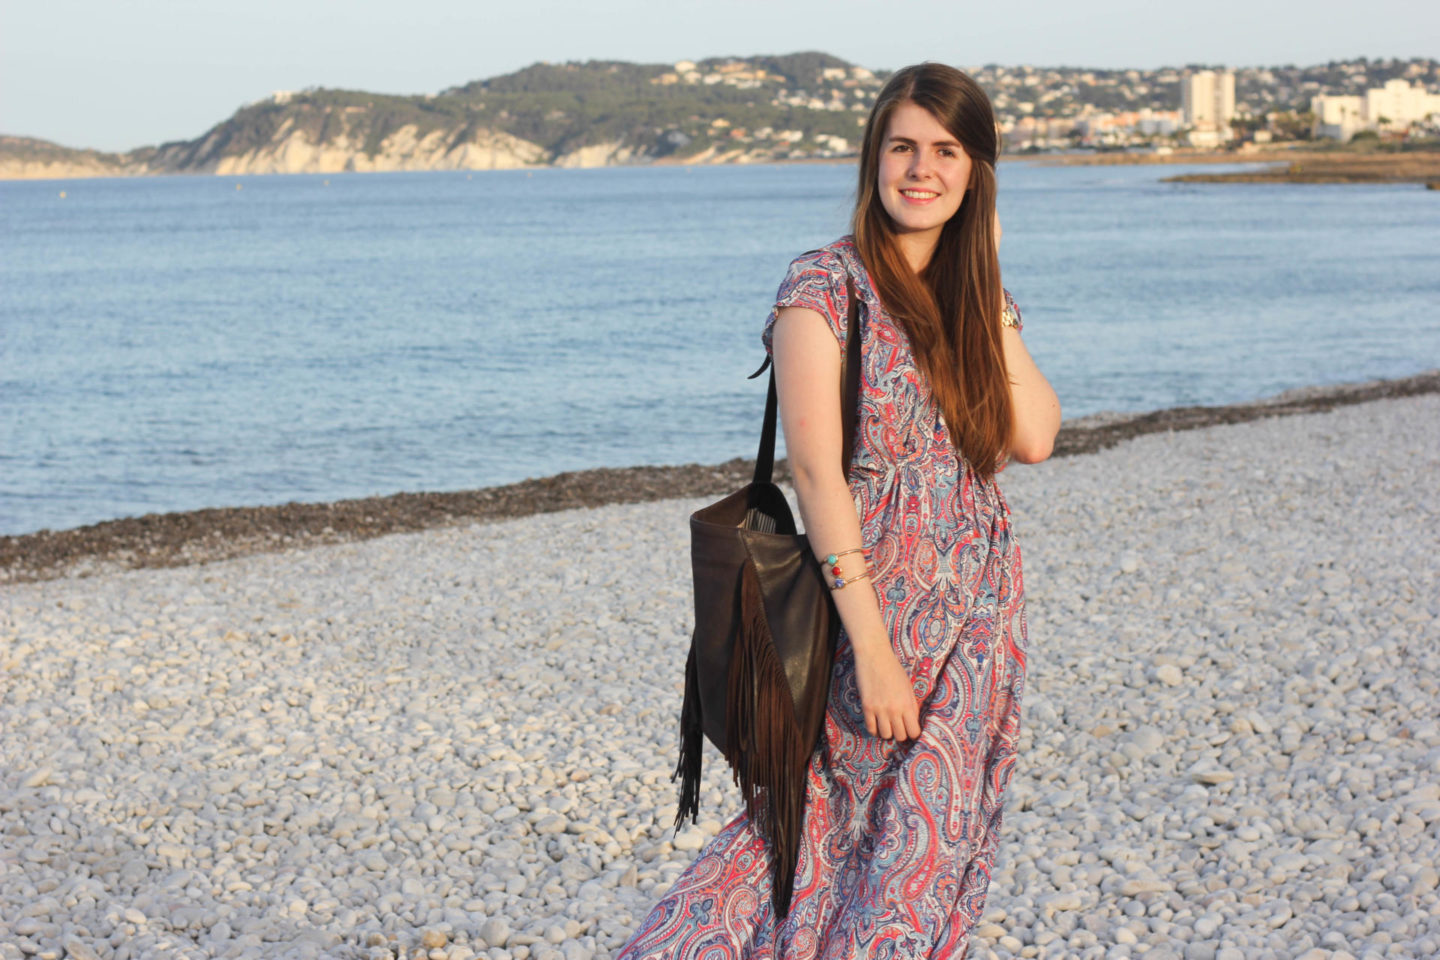 Vacation Outfit Maxidress